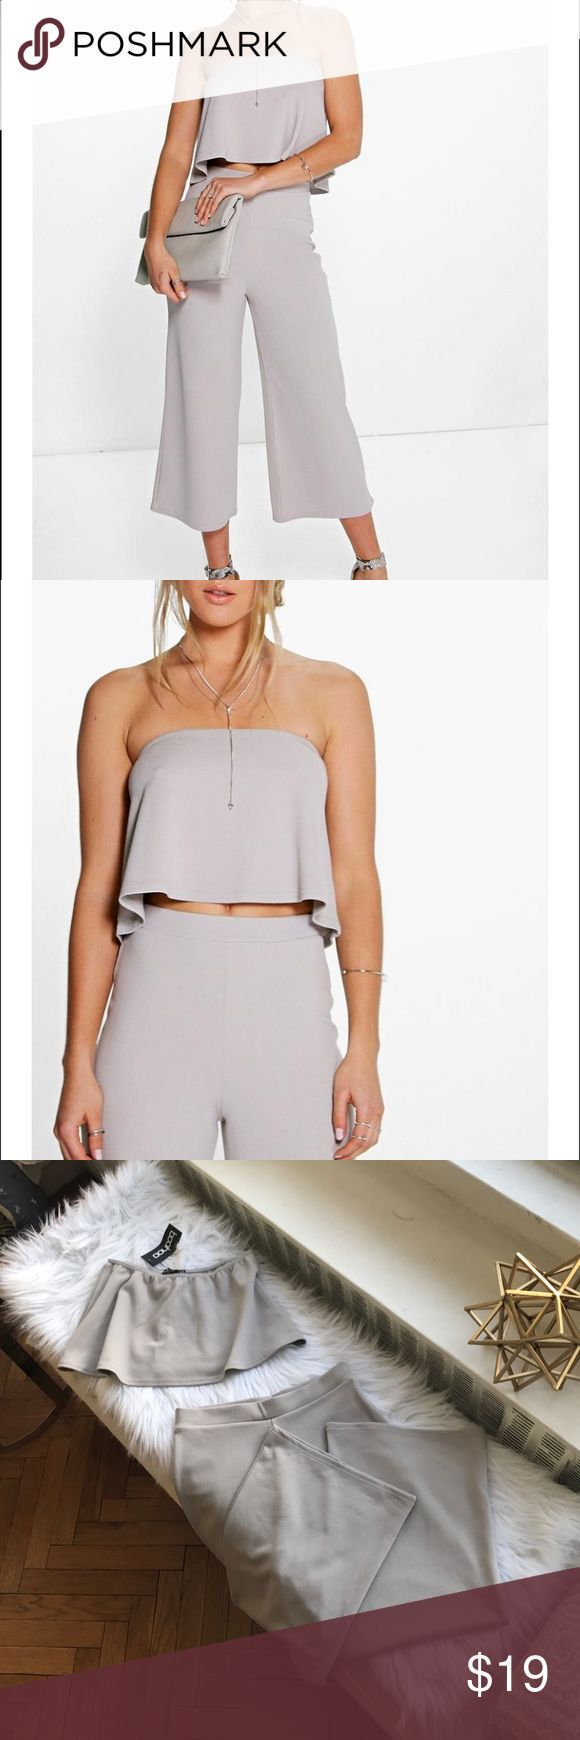 BOOHOO Set!! Cari Bandeau Top & Wide Leg Pants Adorable set including light grey strapless crop top and high waisted wide leg pants. Pants have a stretchy waist and the pant legs themselves are somewhat stretchy (95% polyester 5% elastane). Very chic paired with some stilettos for a night out. Never worn before! Boohoo Tops Crop Tops